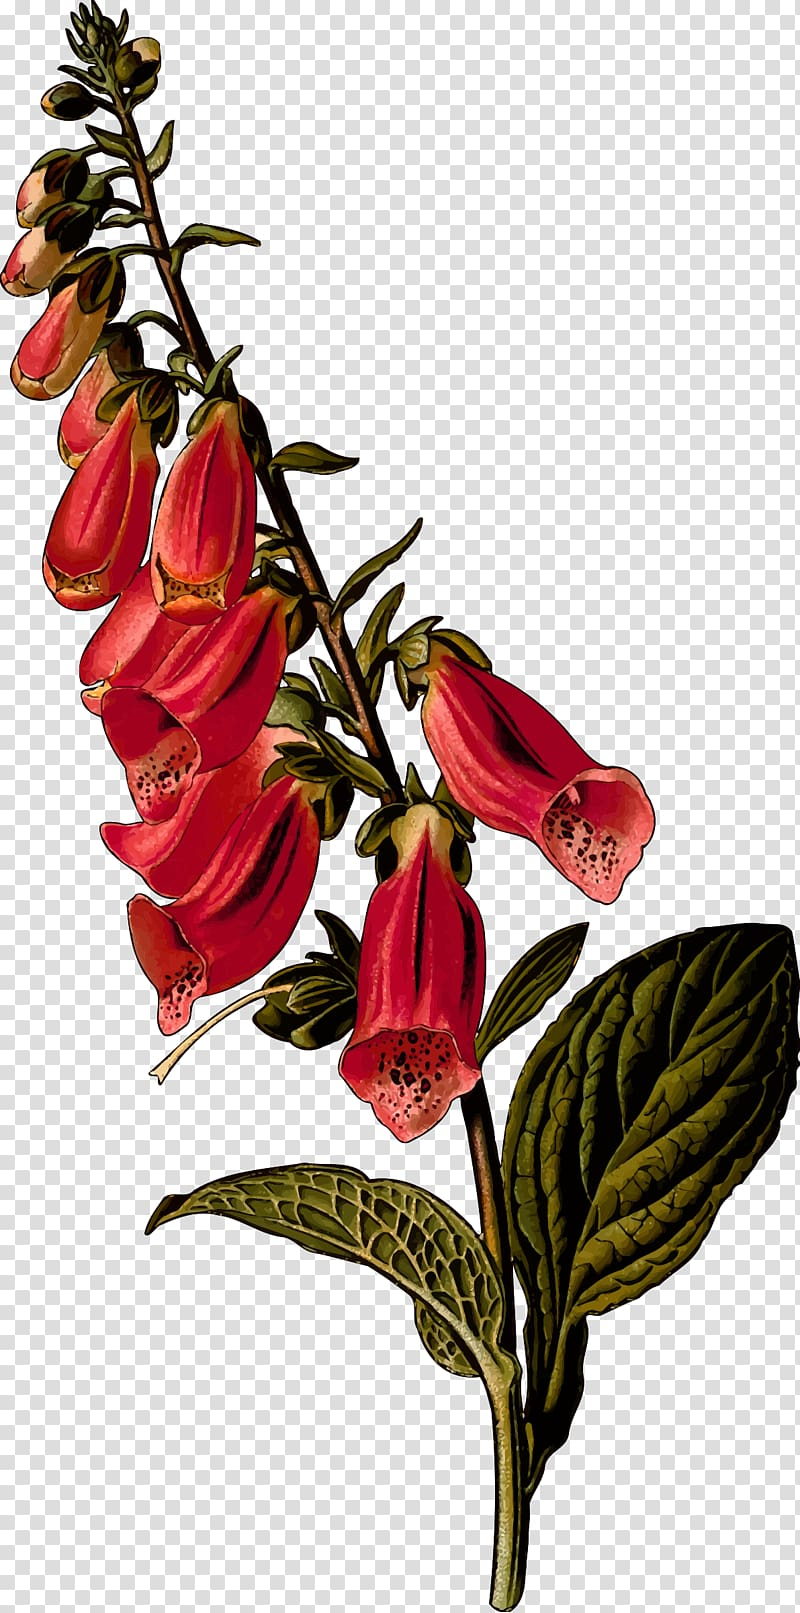 Foxglove transparent background PNG cliparts free download.